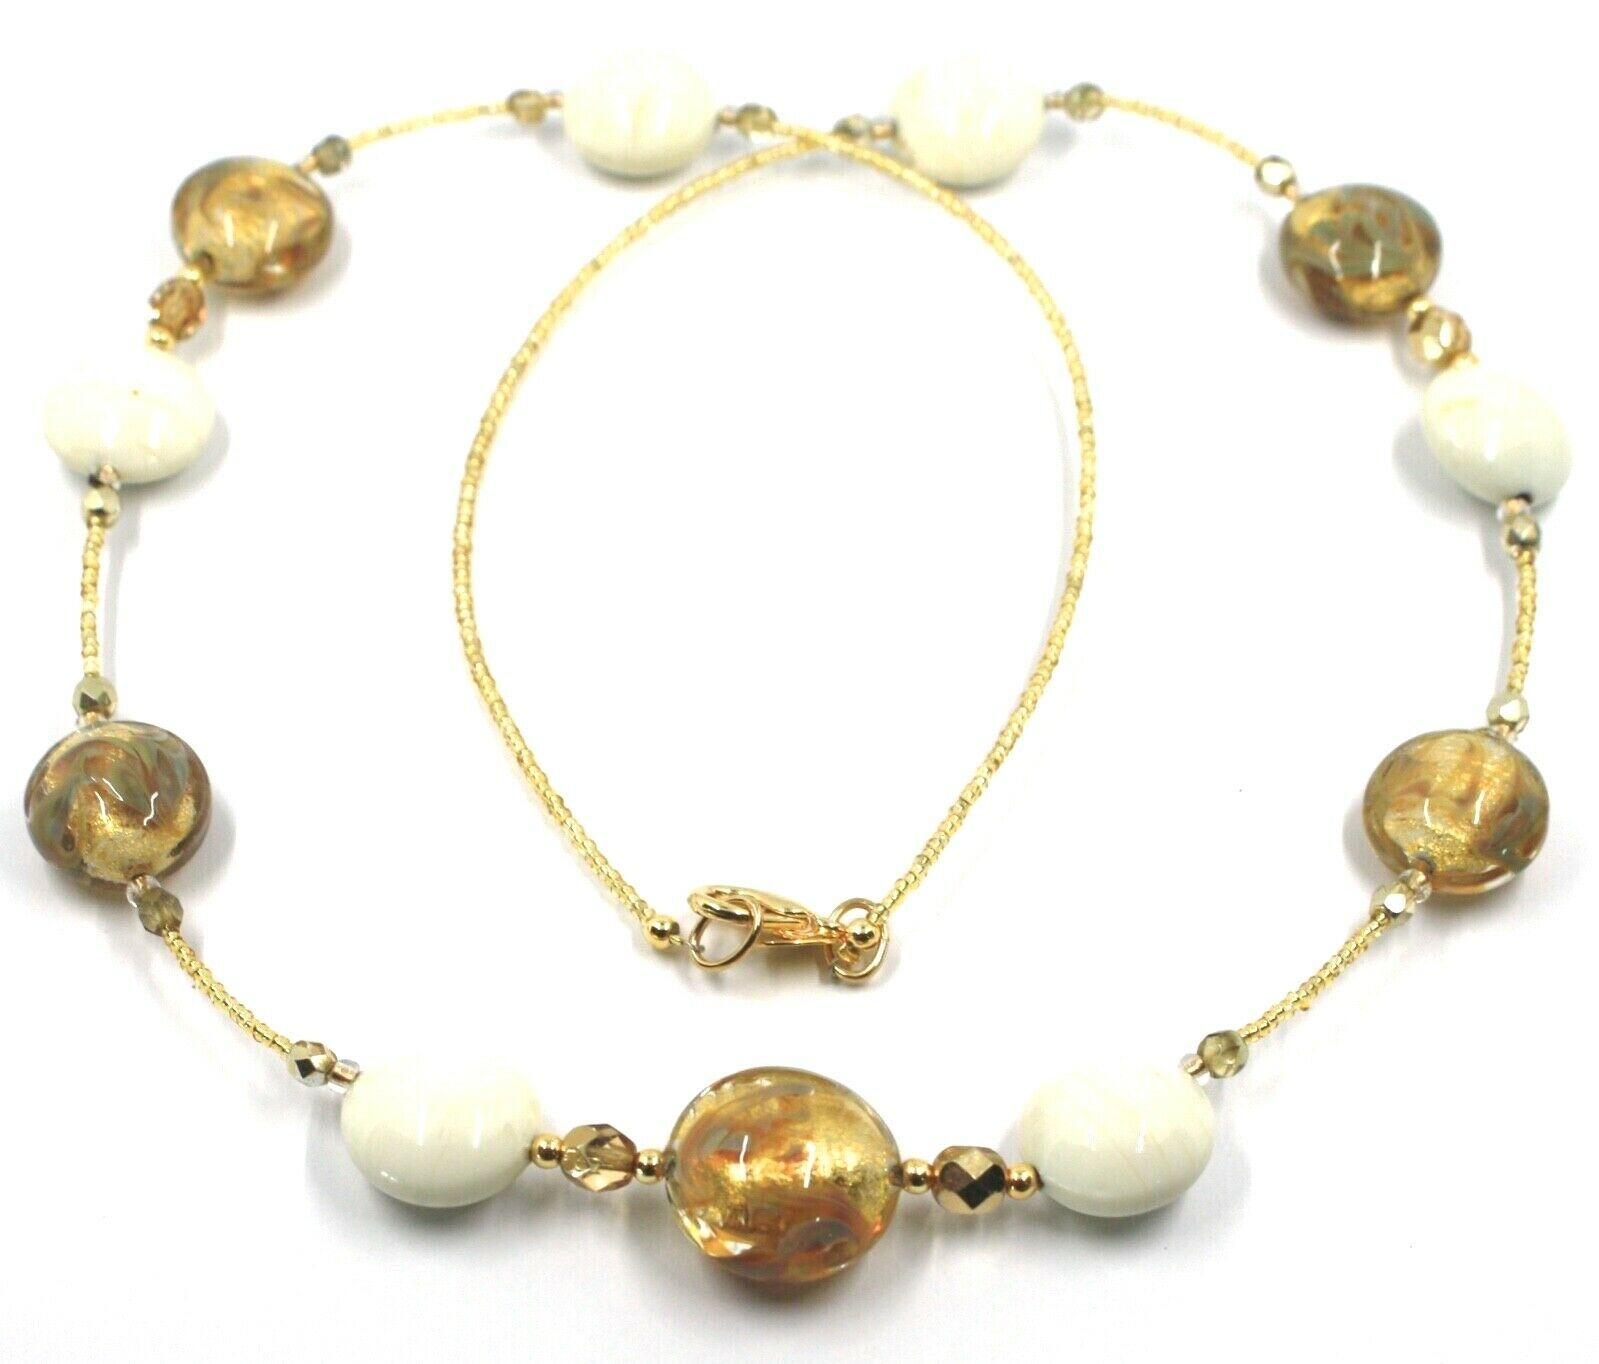 """LONG NECKLACE WHITE YELLOW MURANO GLASS DISC GOLD LEAF, 70cm, 27.5"""" ITALY MADE"""